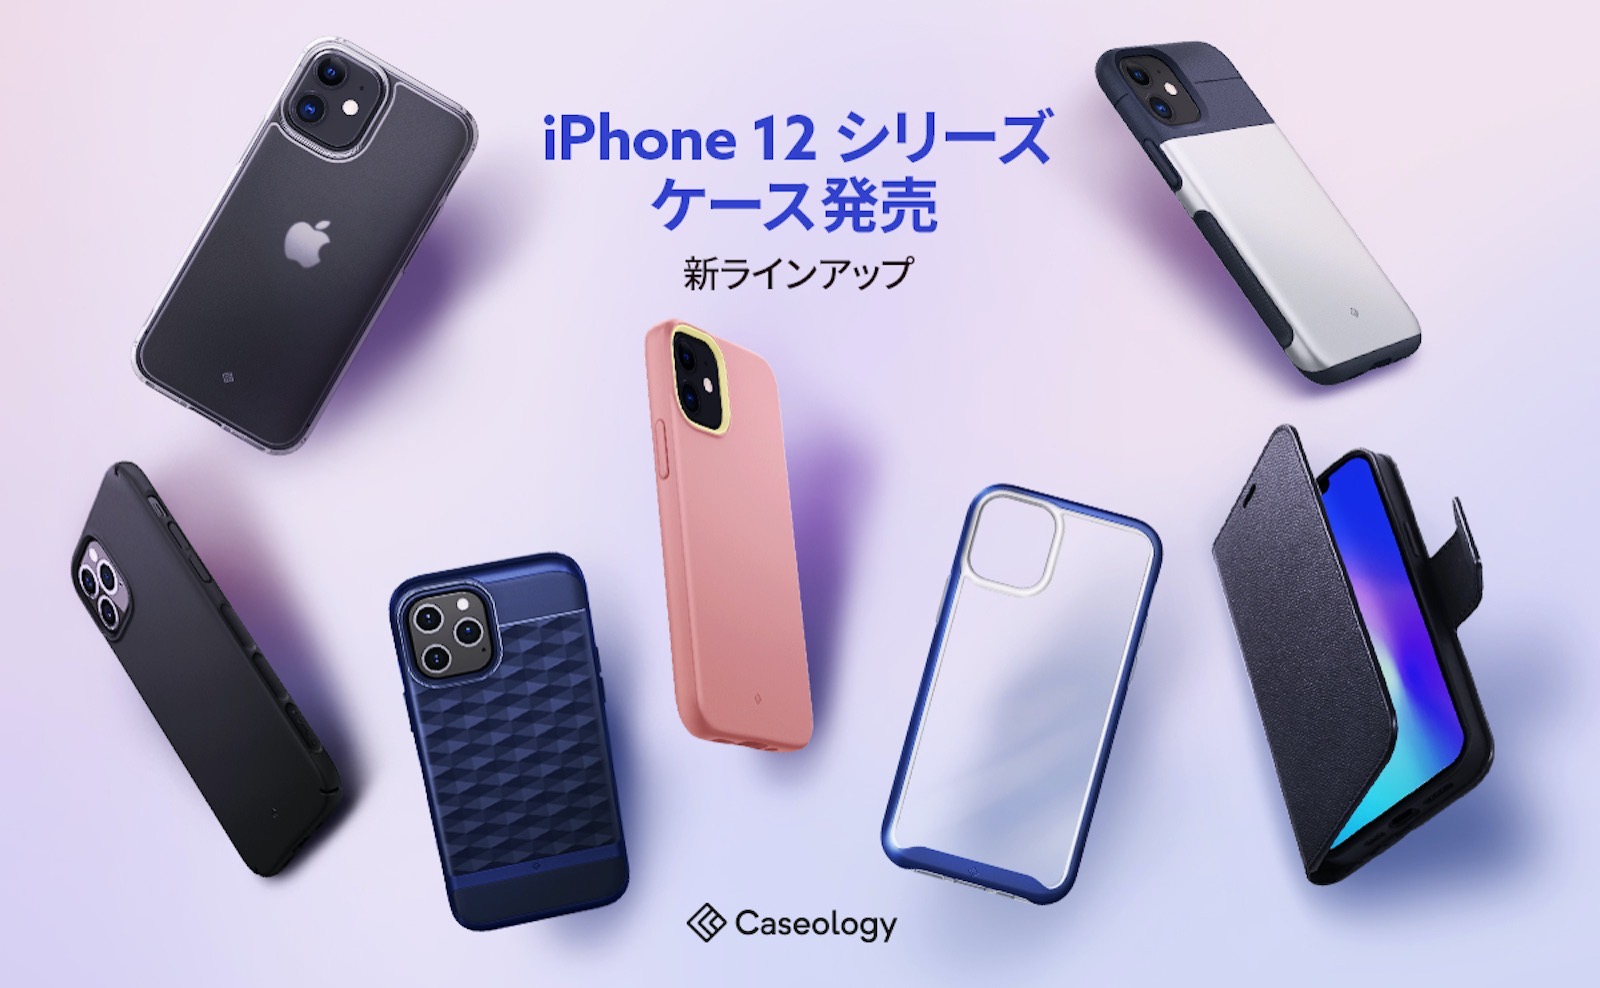 Caseology iphone12 cases and protectors